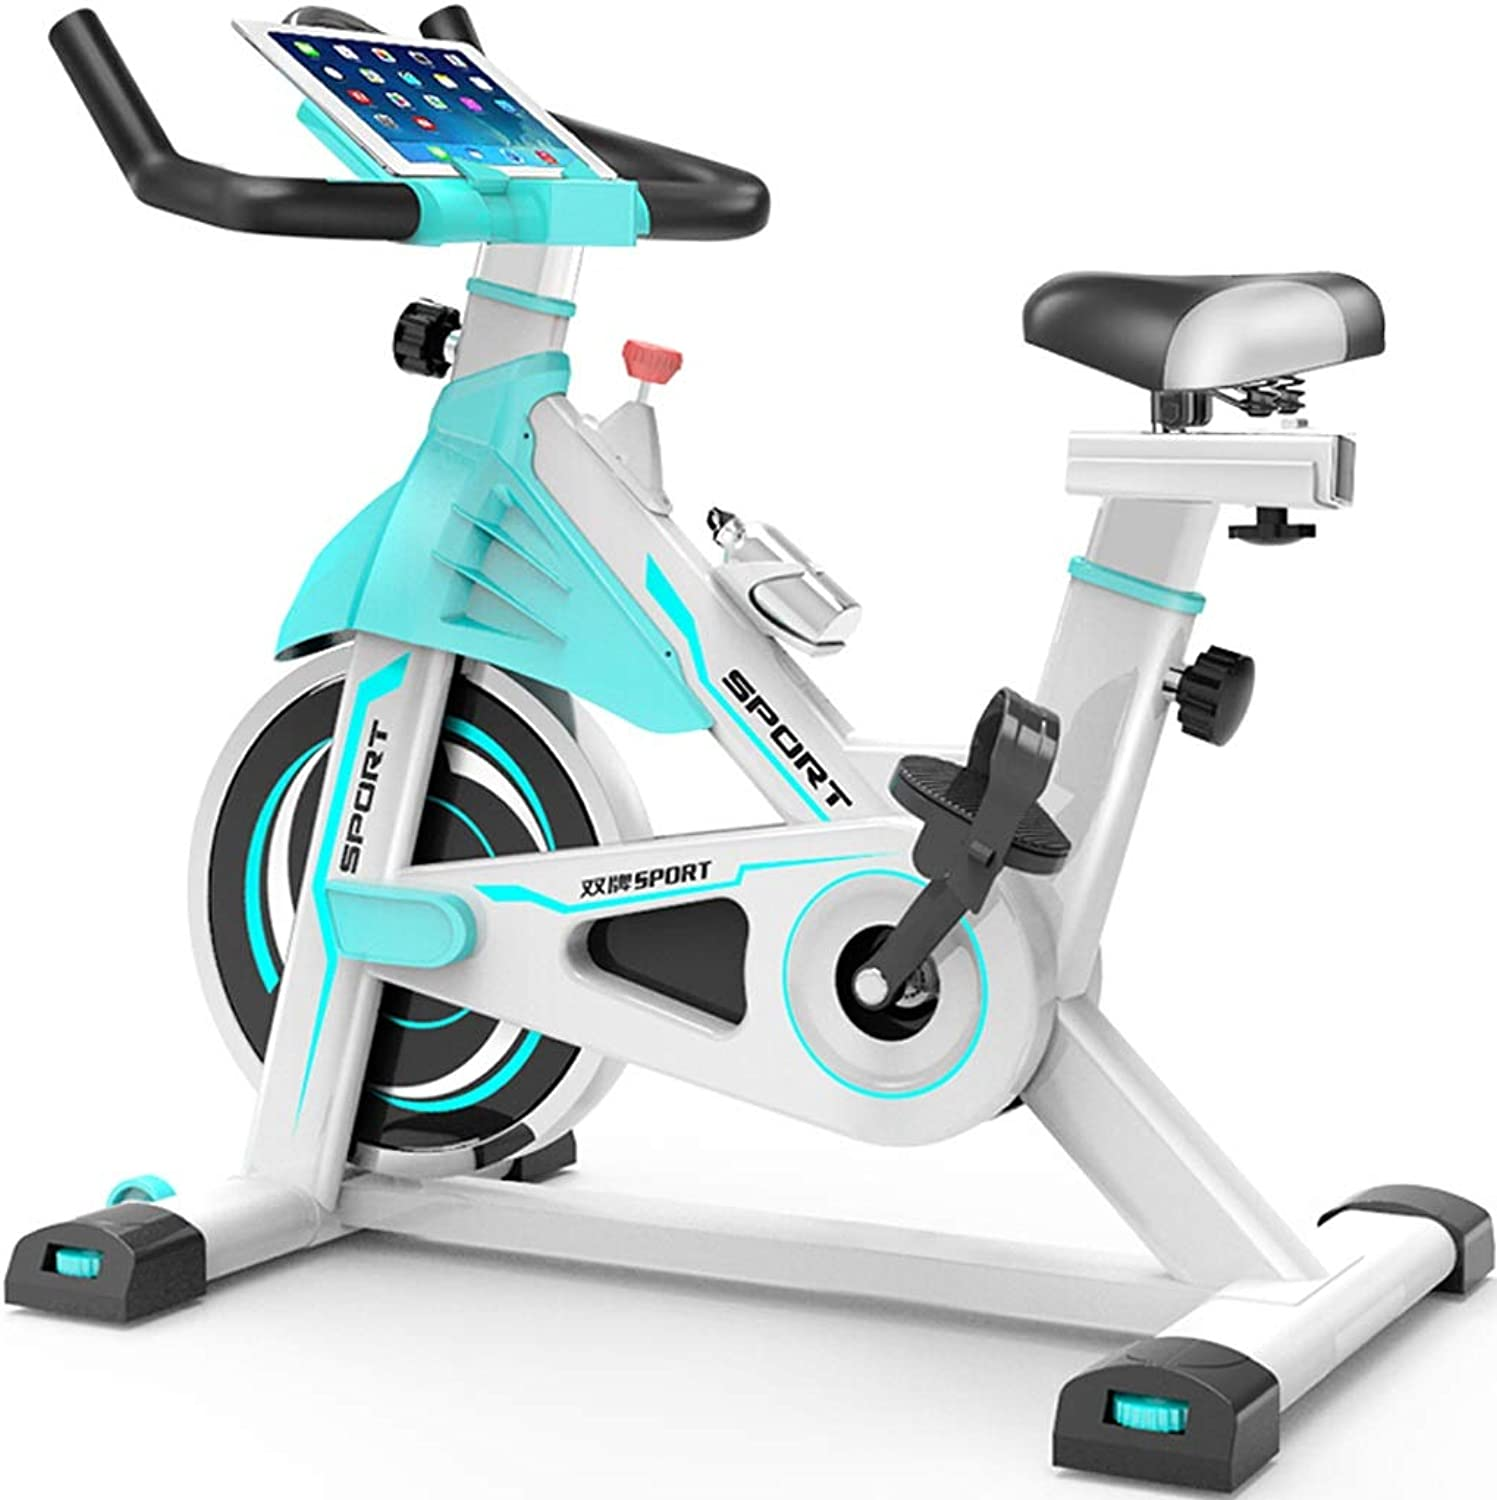 Cly Spinning Bike Fan Fitness Club kommerzielle Heimtrainer Fitness-Studio-Trainingsgerte SY